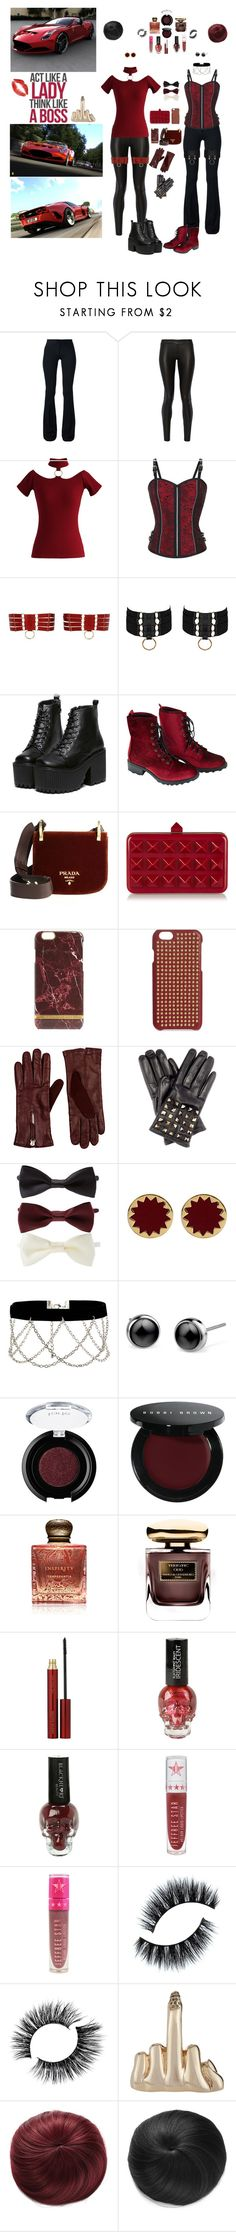 """""""Tonight We're Going Hard"""" by blackmagicmomma ❤ liked on Polyvore featuring Ferrari, Derek Lam, The Row, Chicwish, Bordelle, Wet Seal, Prada, Valentino, Richmond & Finch and The Case Factory"""